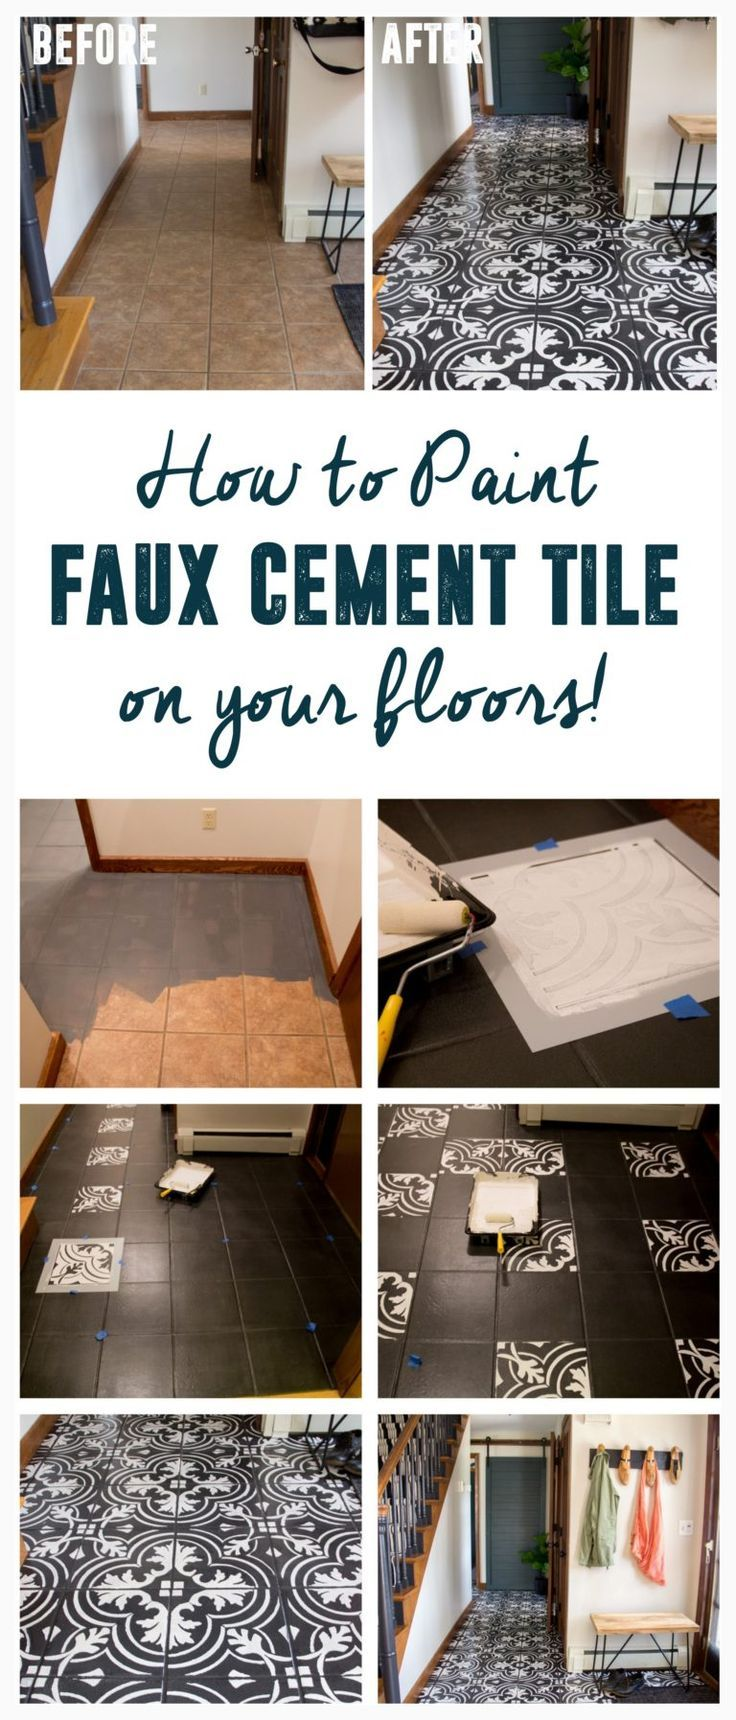 DIY Faux Cement Tile, How to Paint Tile, DIY Faux Cement Tile Floors www.BrightGreenDoor.com